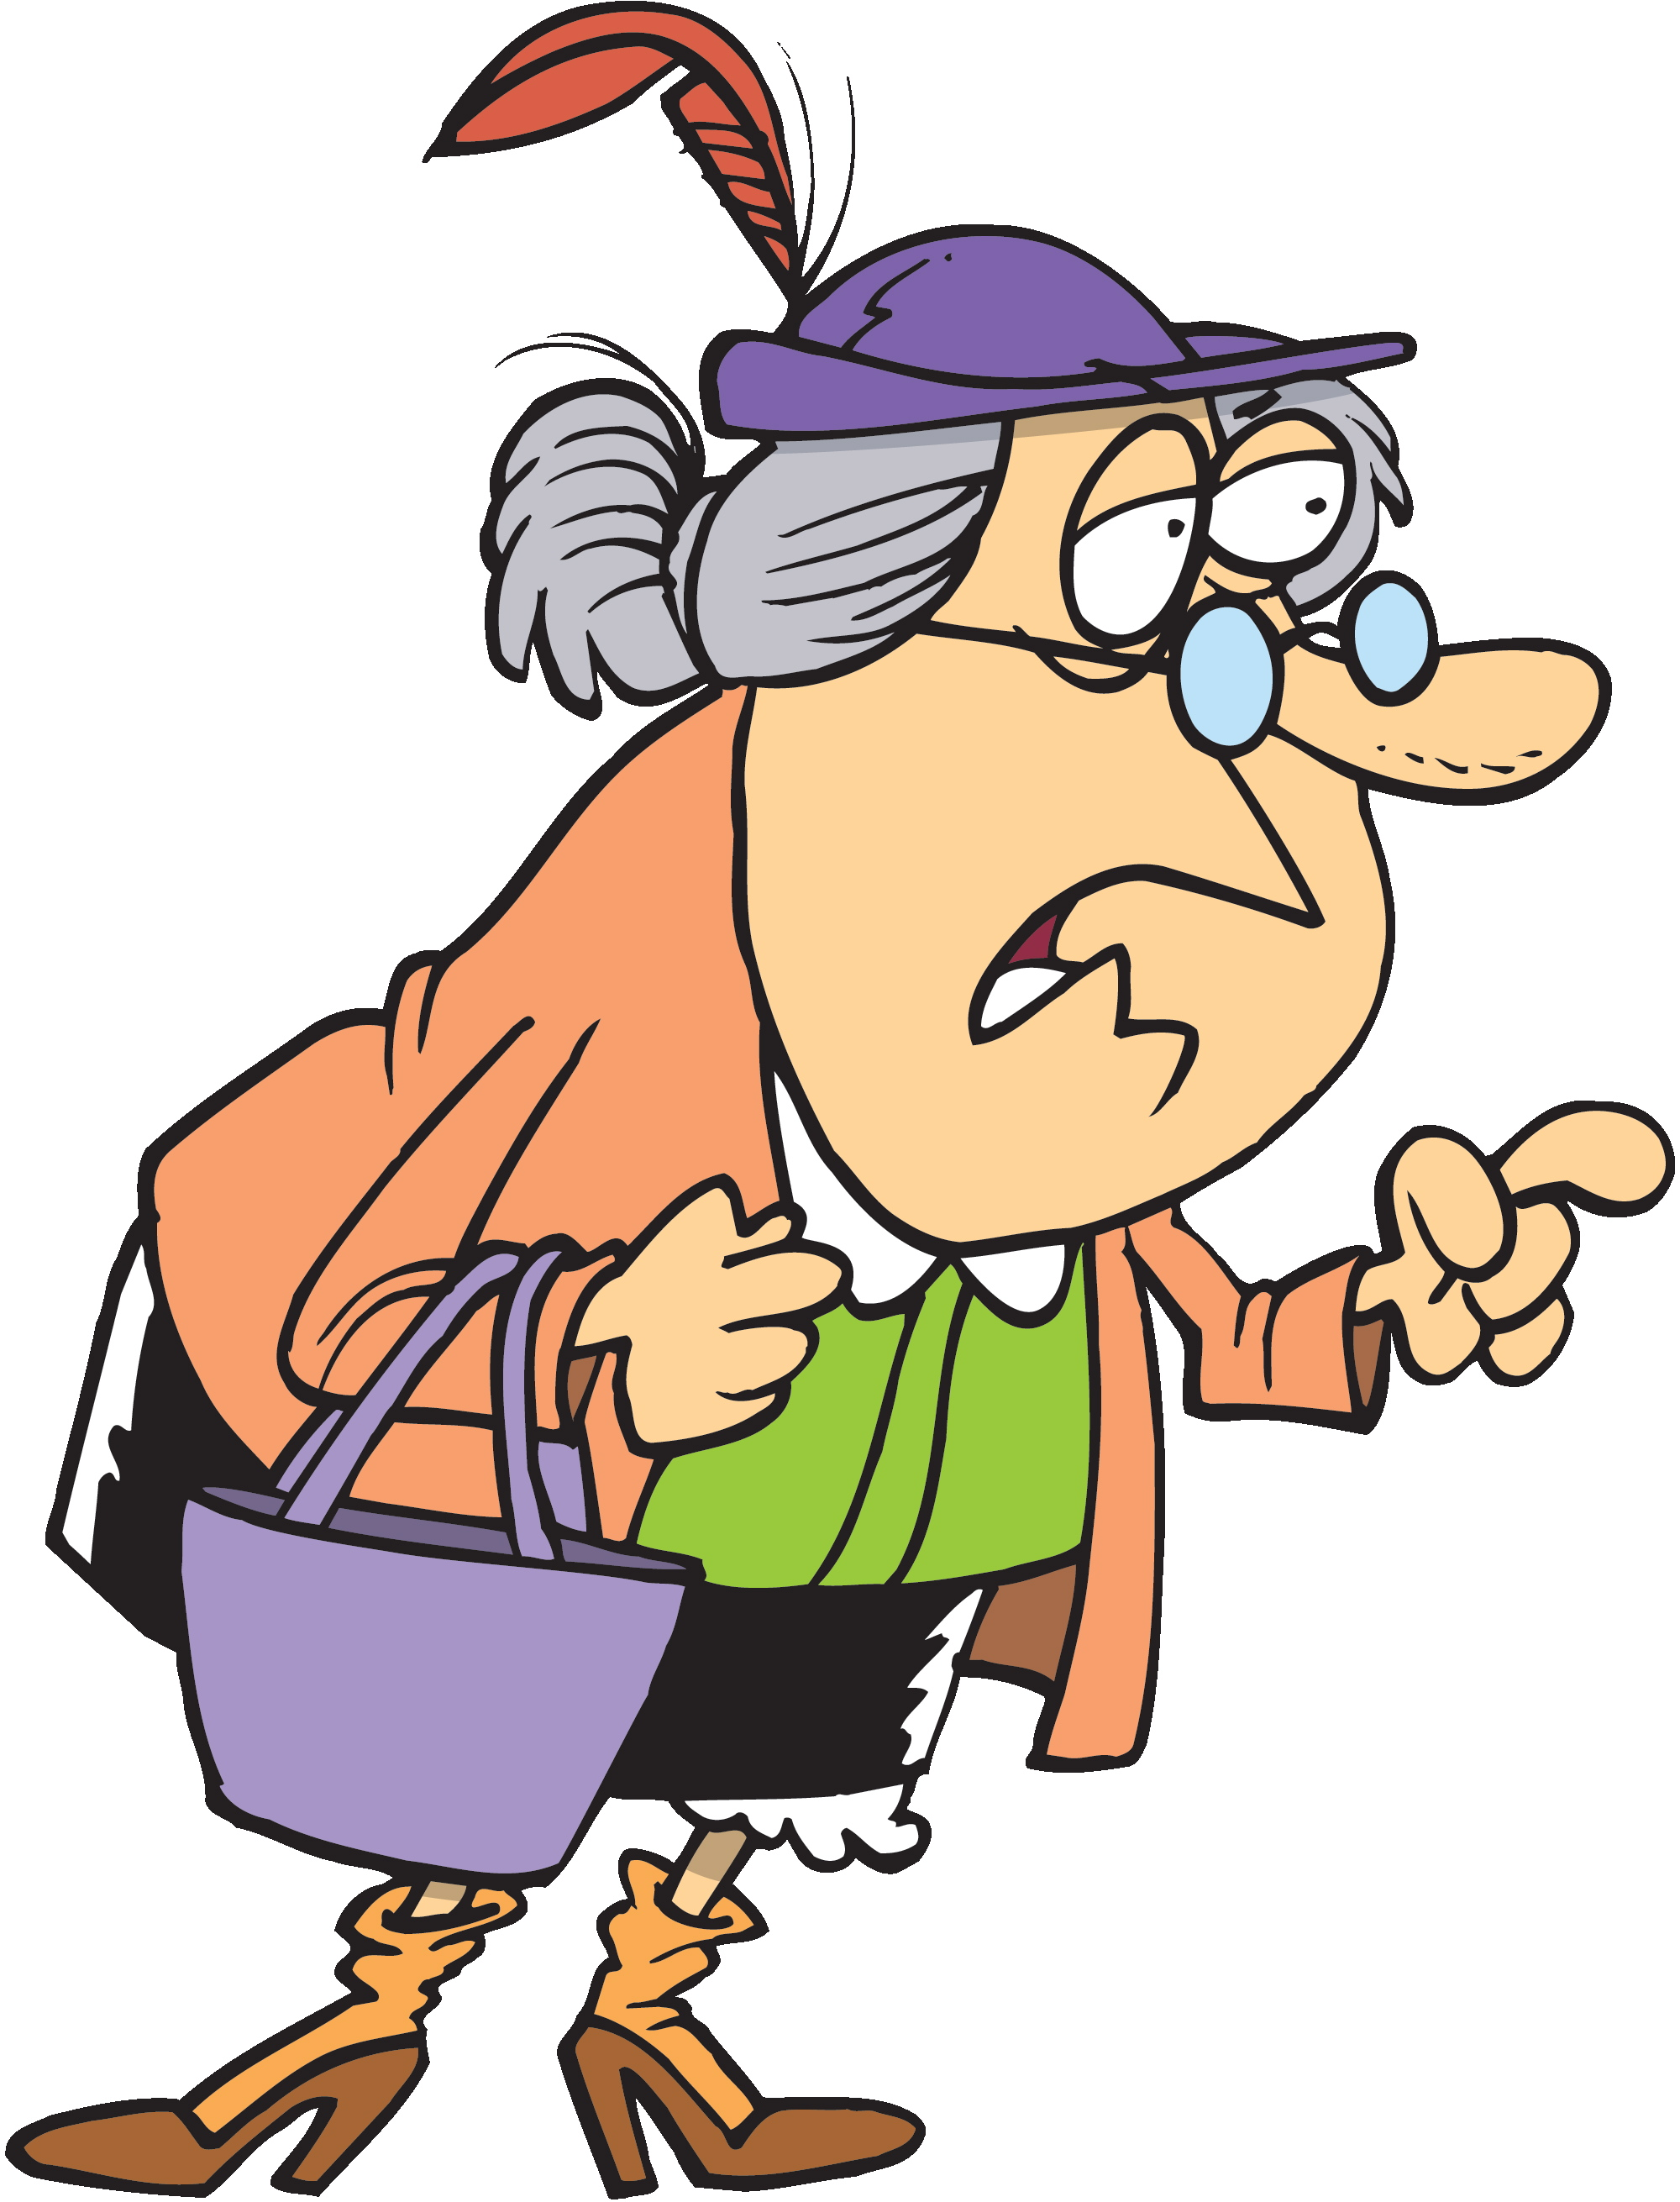 Tired old lady clipart image clip black and white download Grumpy Old Man Clipart | Free download best Grumpy Old Man Clipart ... clip black and white download